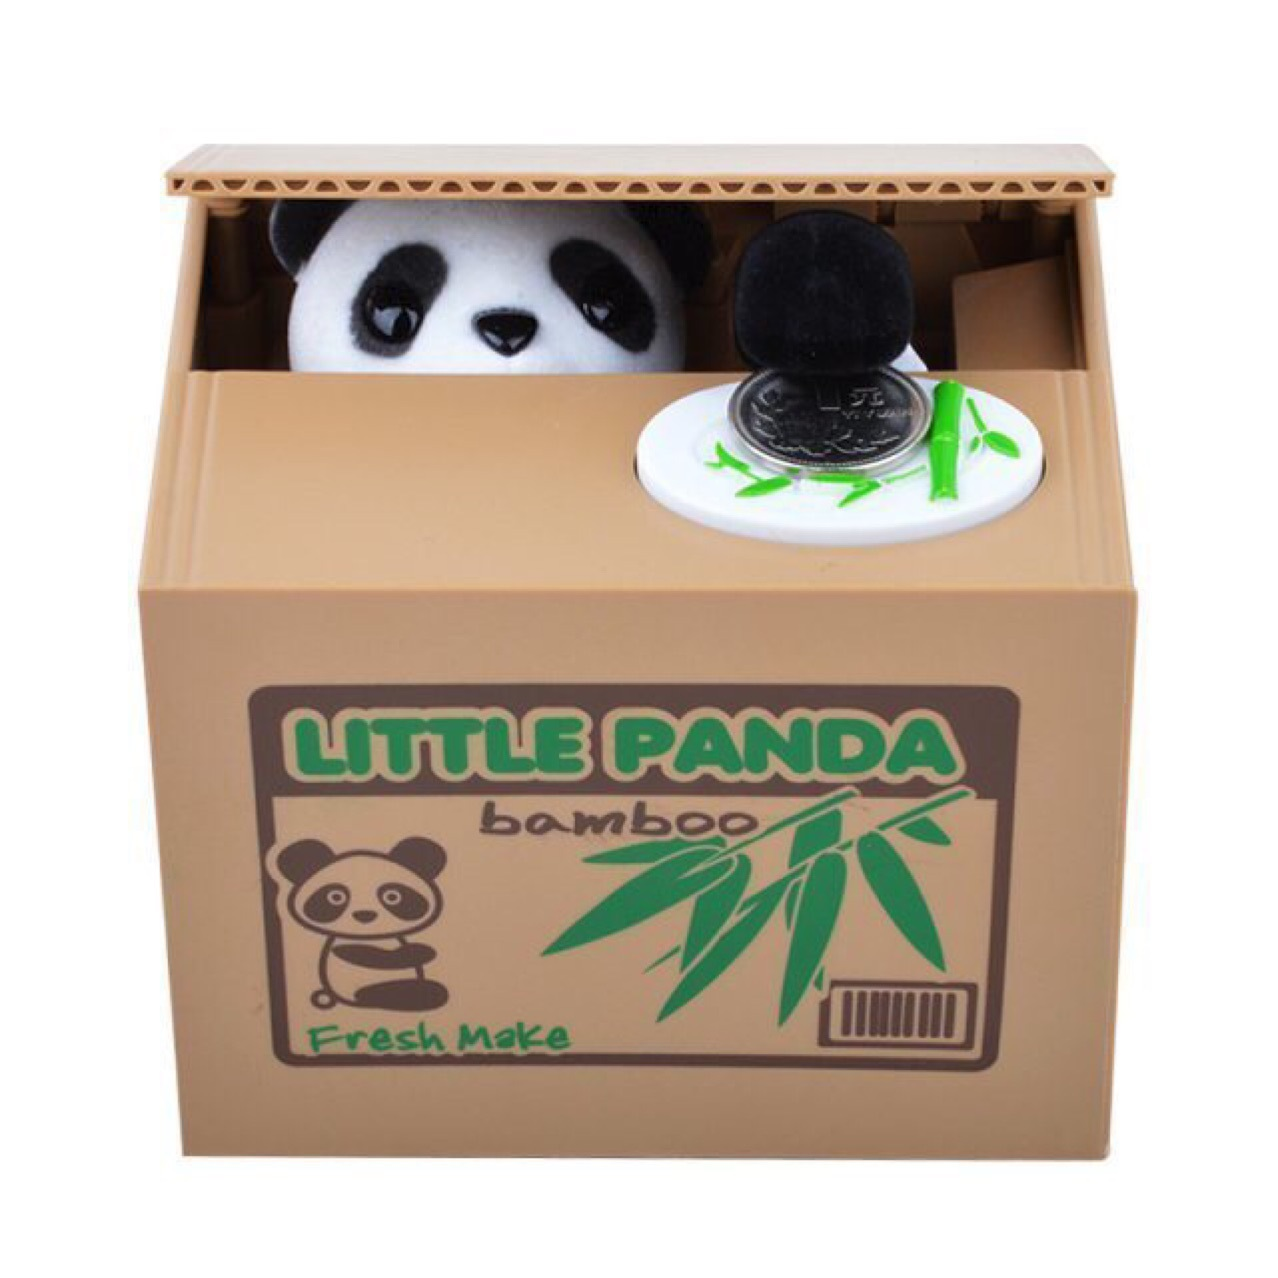 Money boxes ola Panda Thief Money boxes toy piggy banks gift kids money boxes Automatic Stole Coin Piggy Bank Money Saving Box